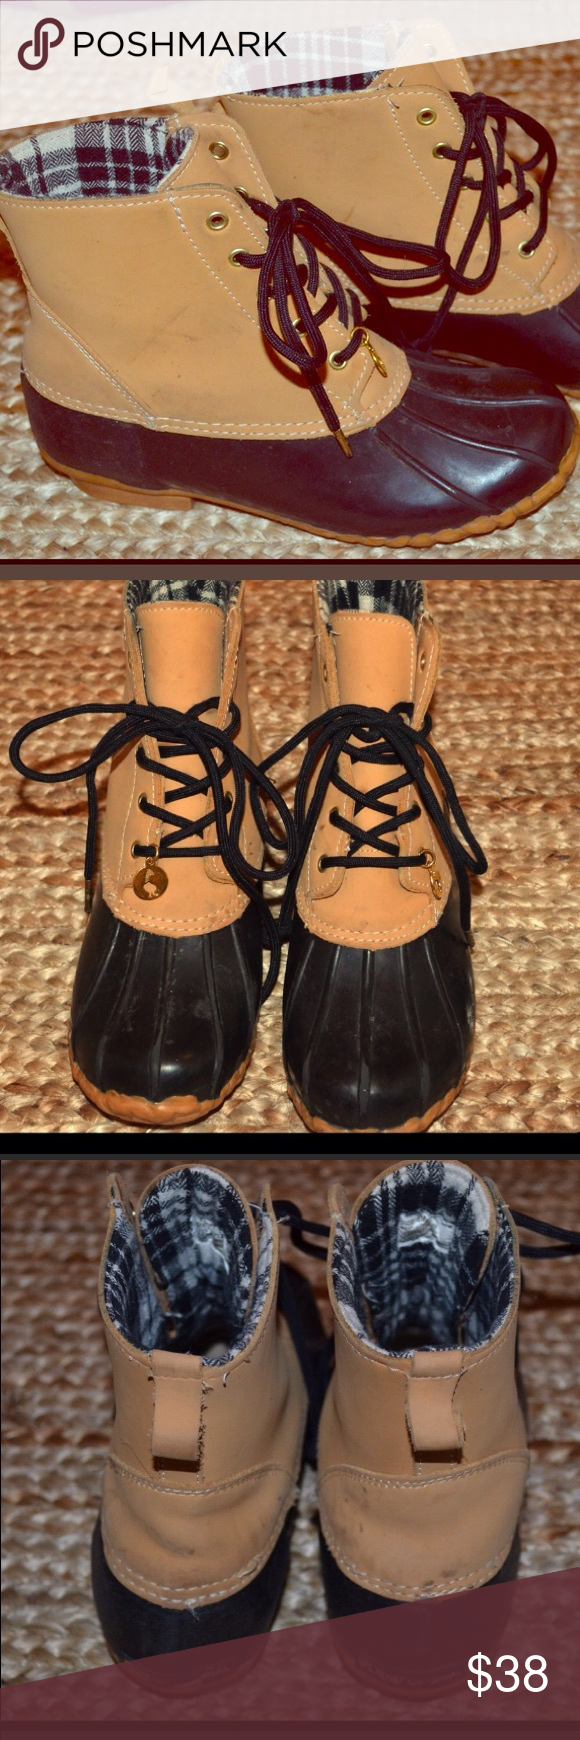 Sperry booties Good used condition Sperry Shoes Winter & Rain Boots